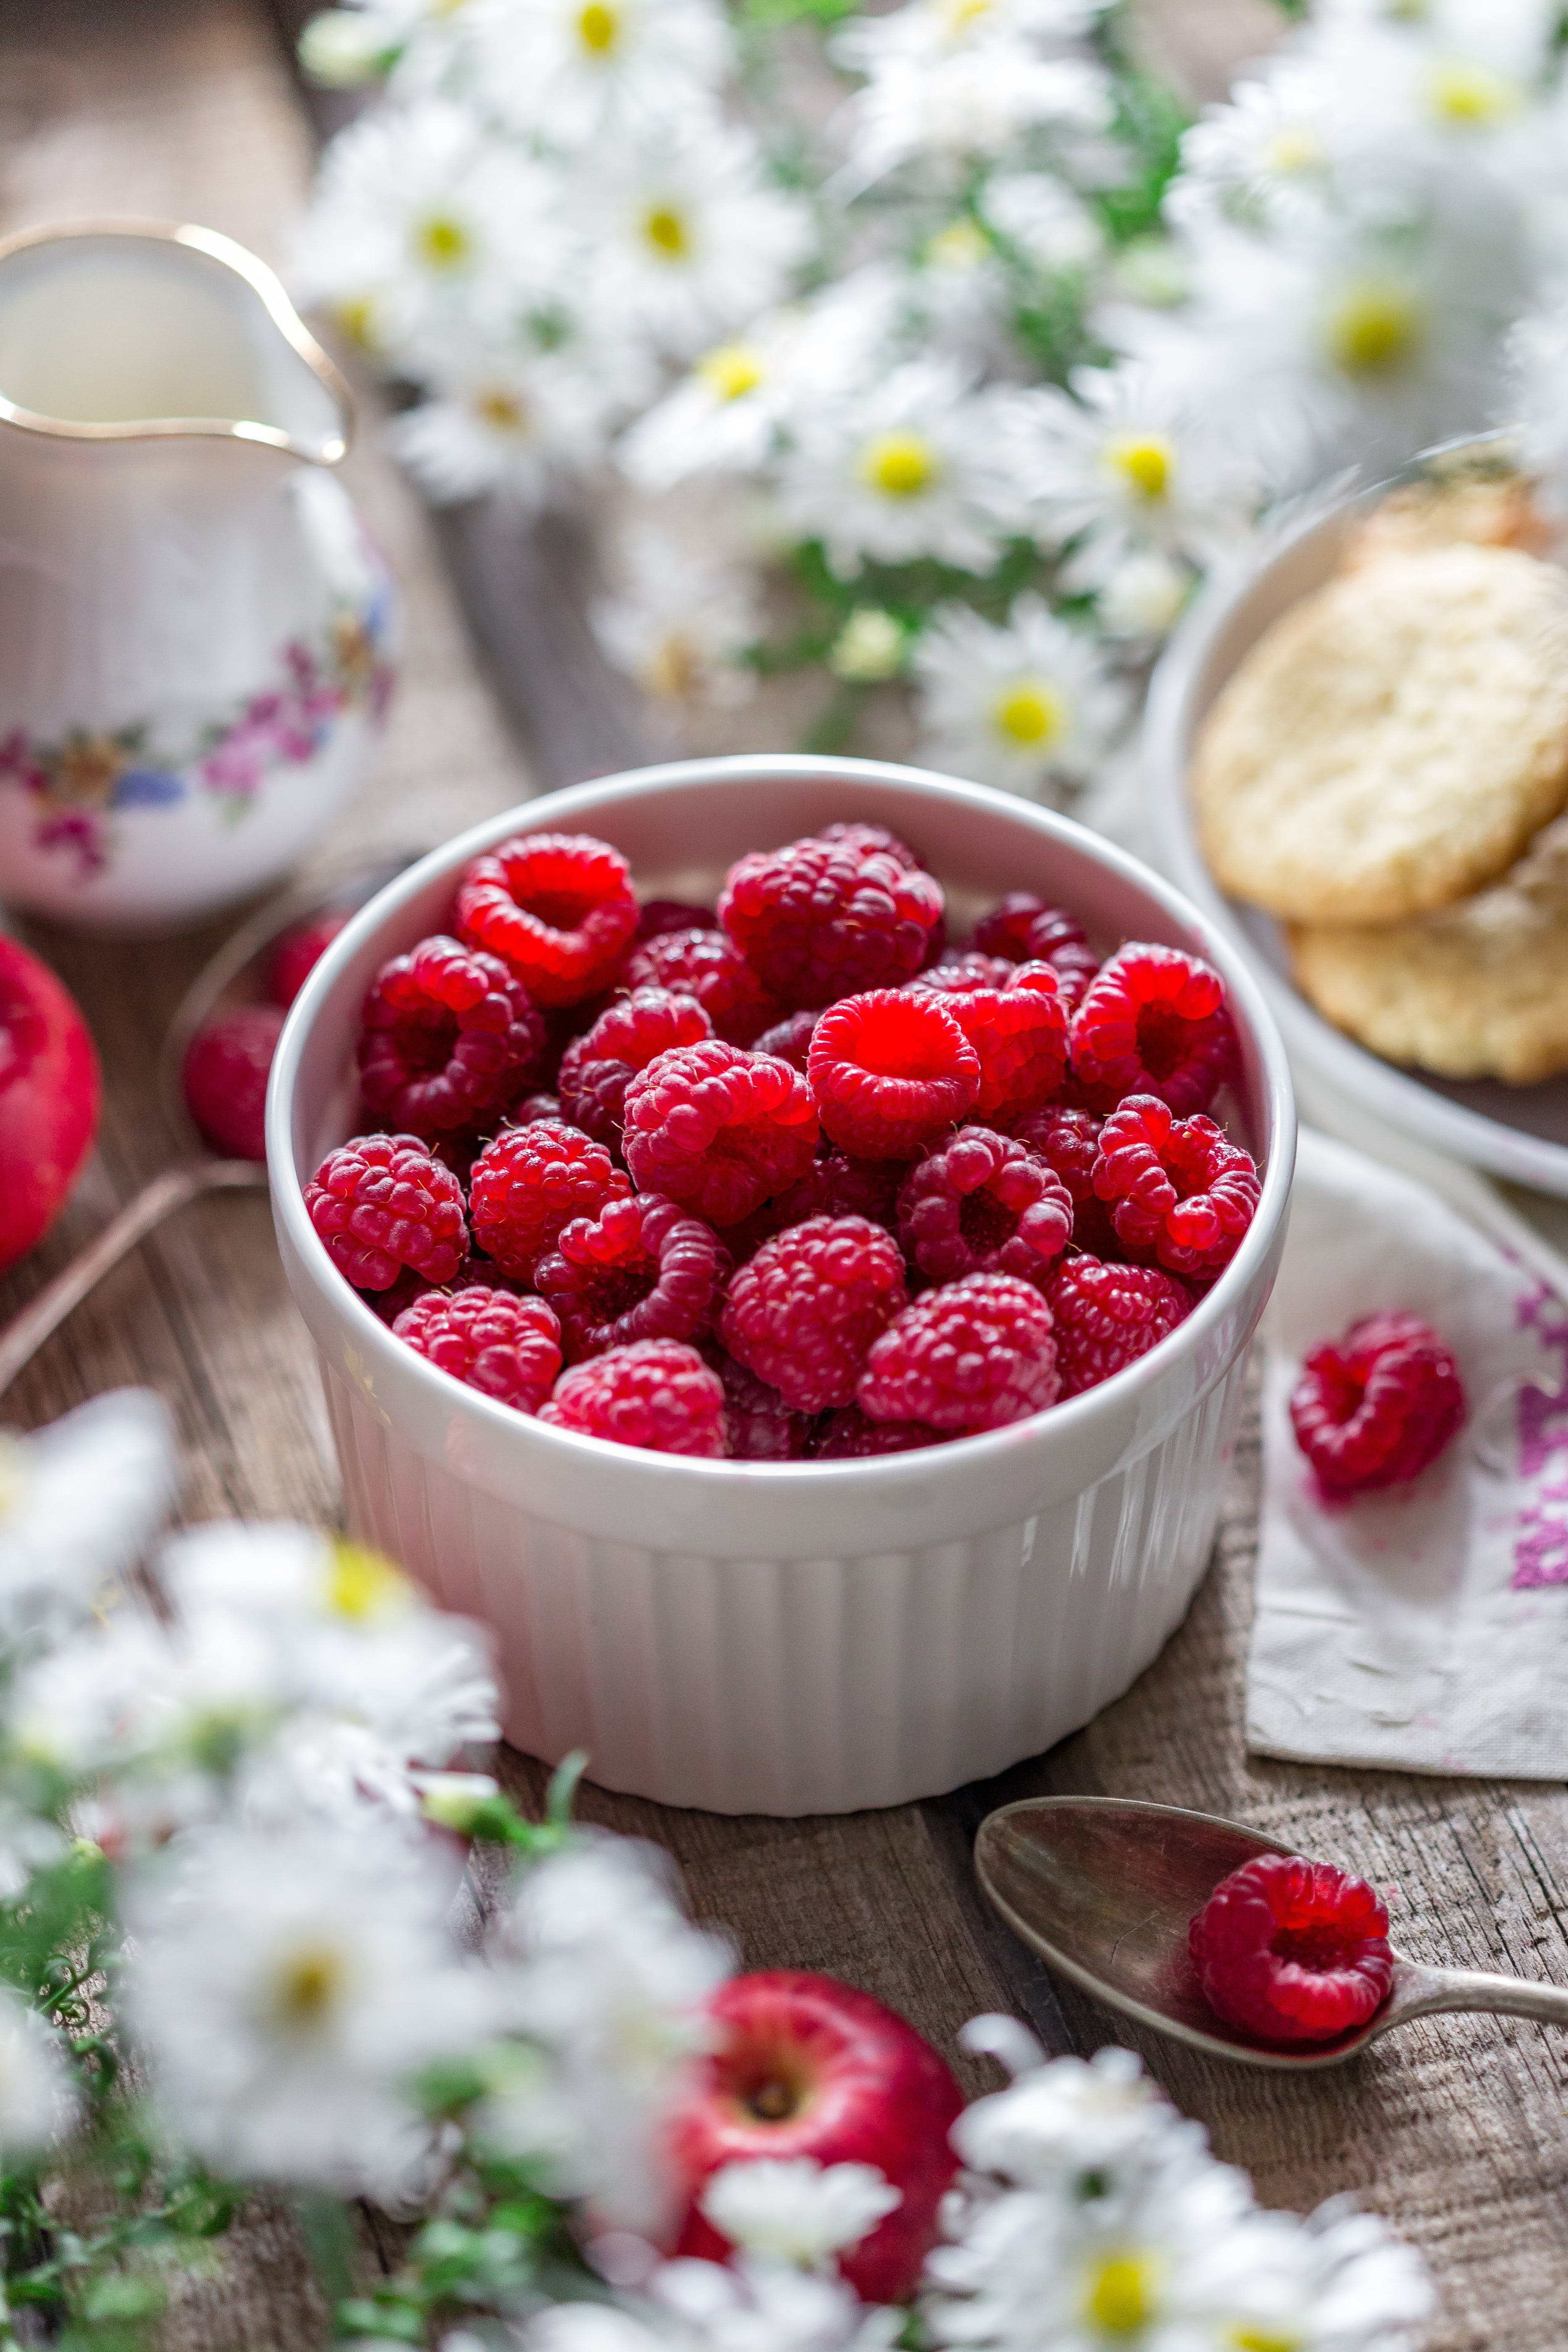 Close-up of Raspberries in Bowl on Table